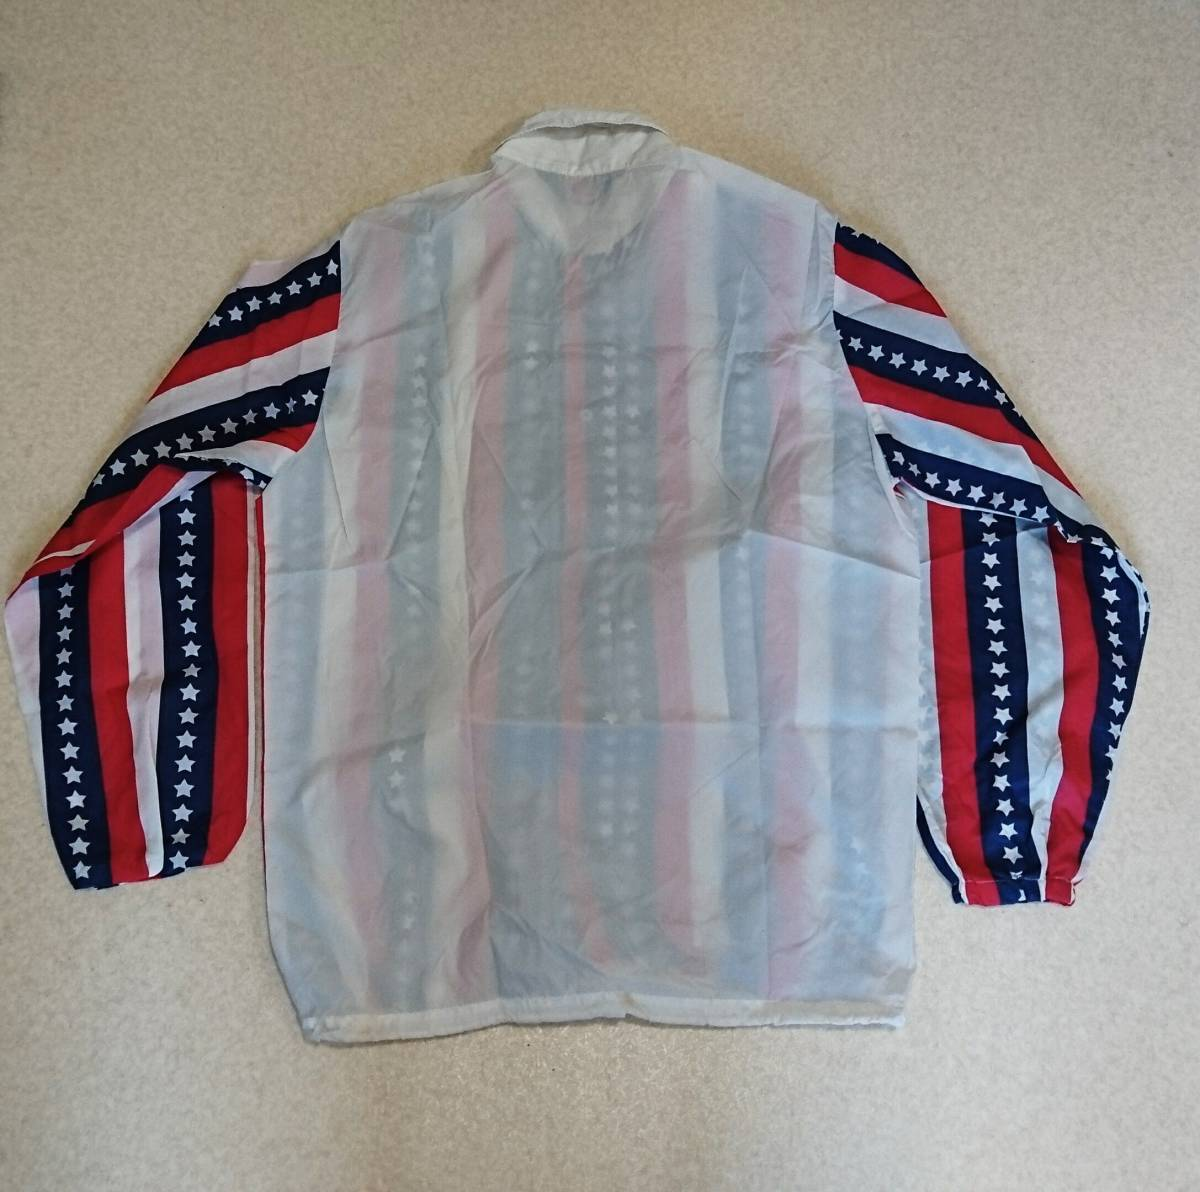 70s PIA-JAC ウインドブレーカー アメリカ国旗 36-38MADE IN USA ビンテージ _画像5